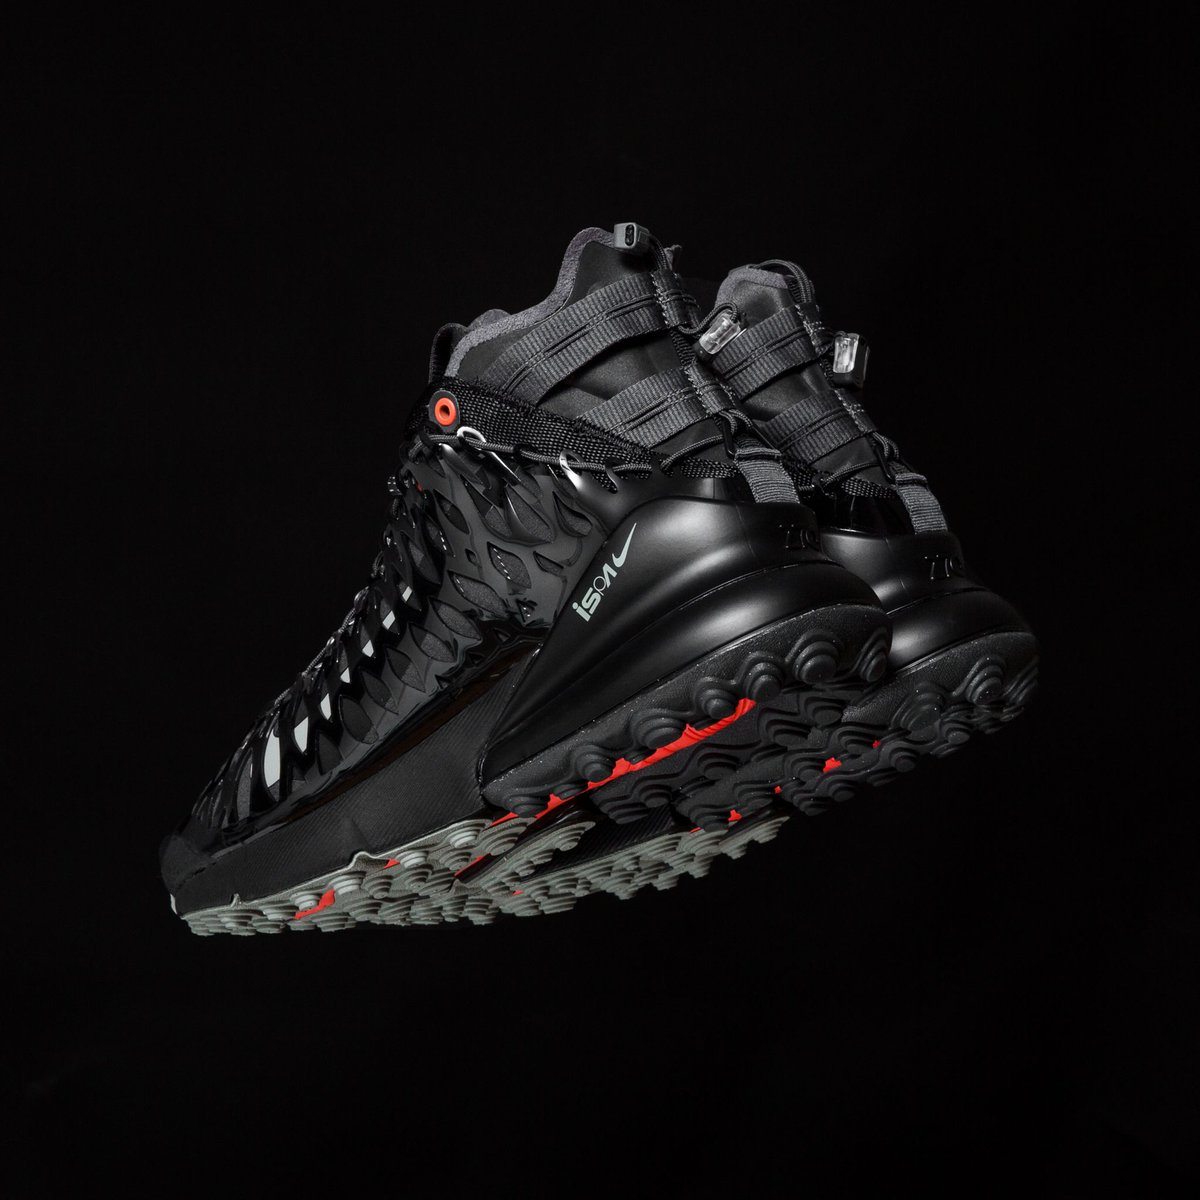 Nike Air Max 270 ISPA Black Anthracite